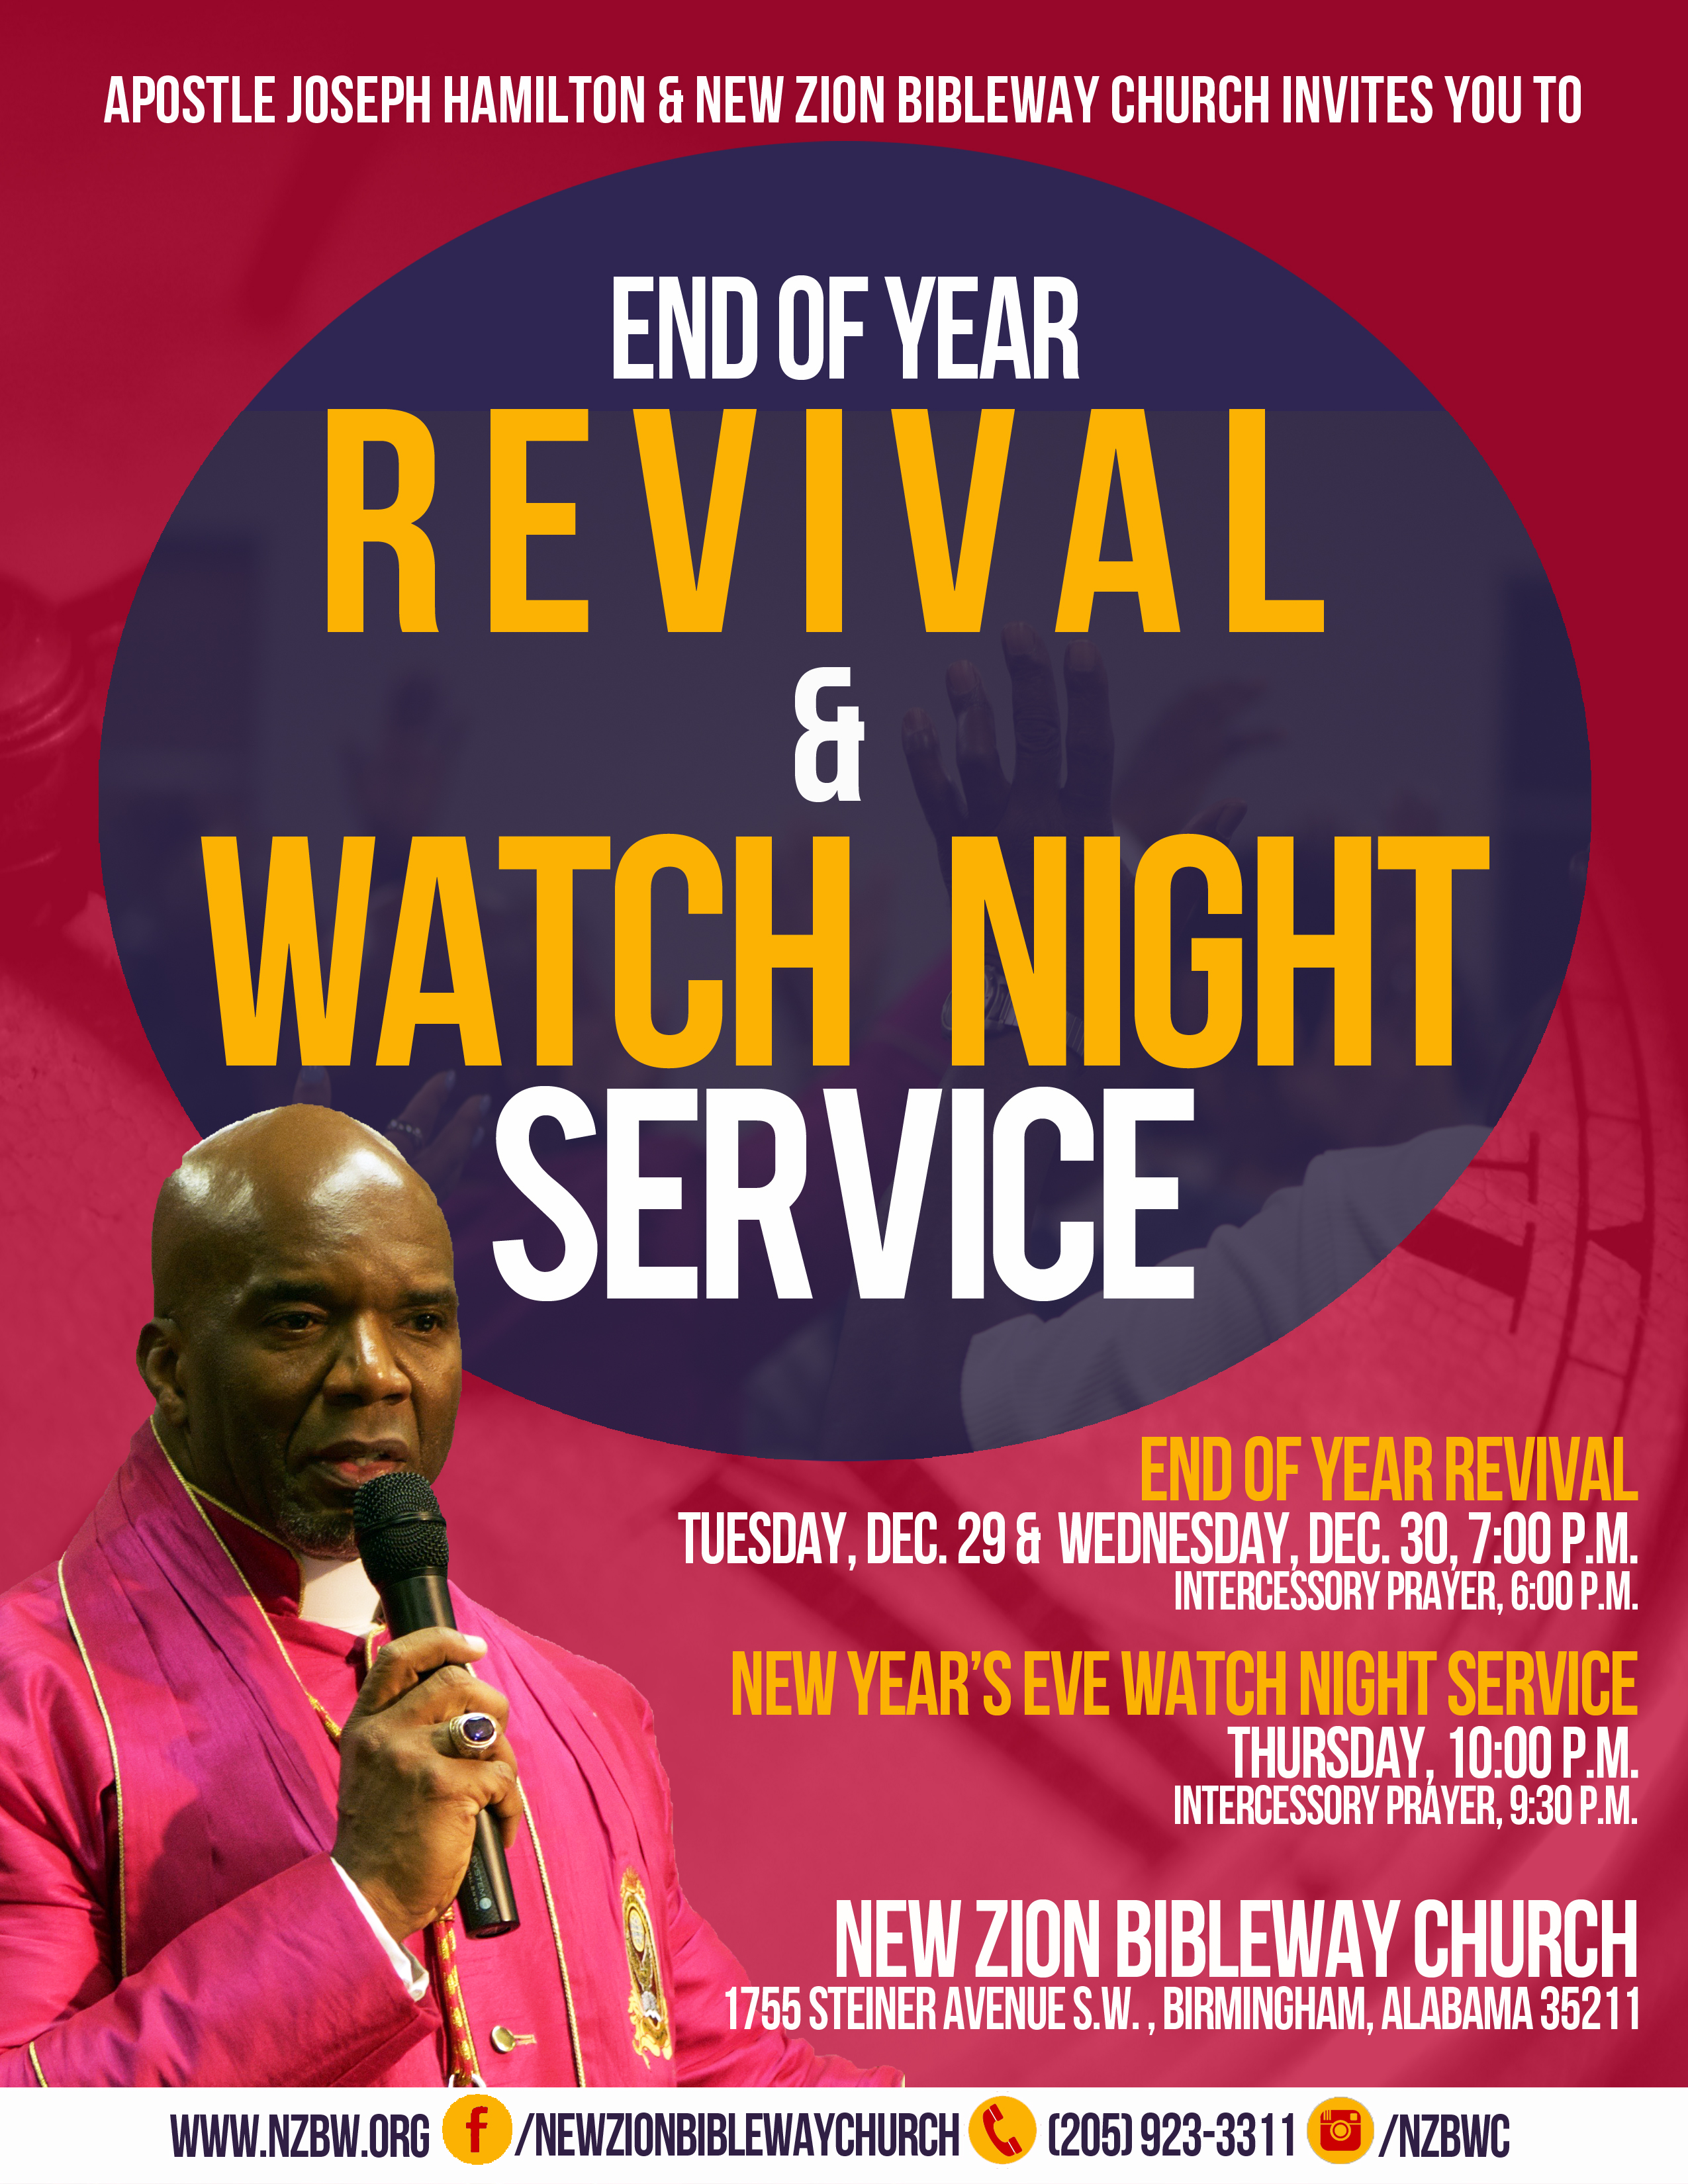 Zion bible way church end of year revival amp watch night service